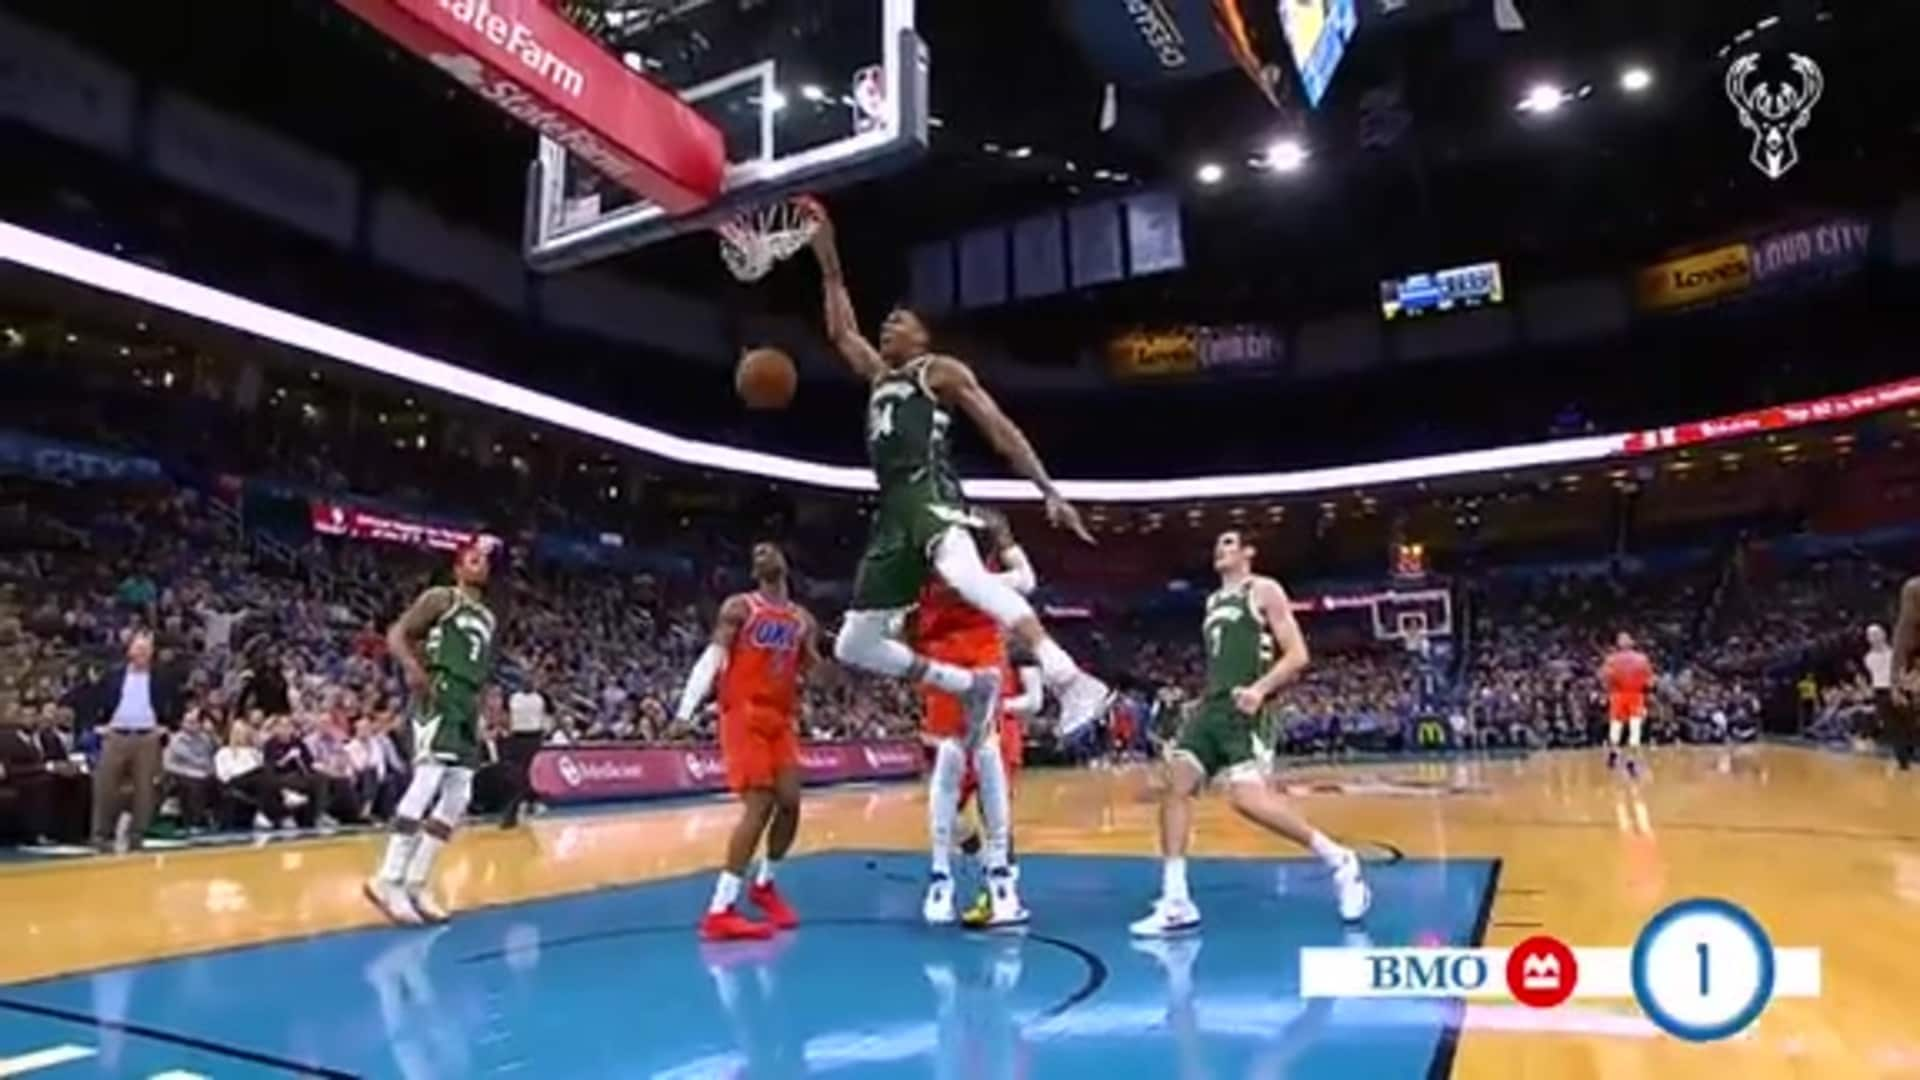 BMO Harris Bank Top Five Plays of 2019-20: Week 3